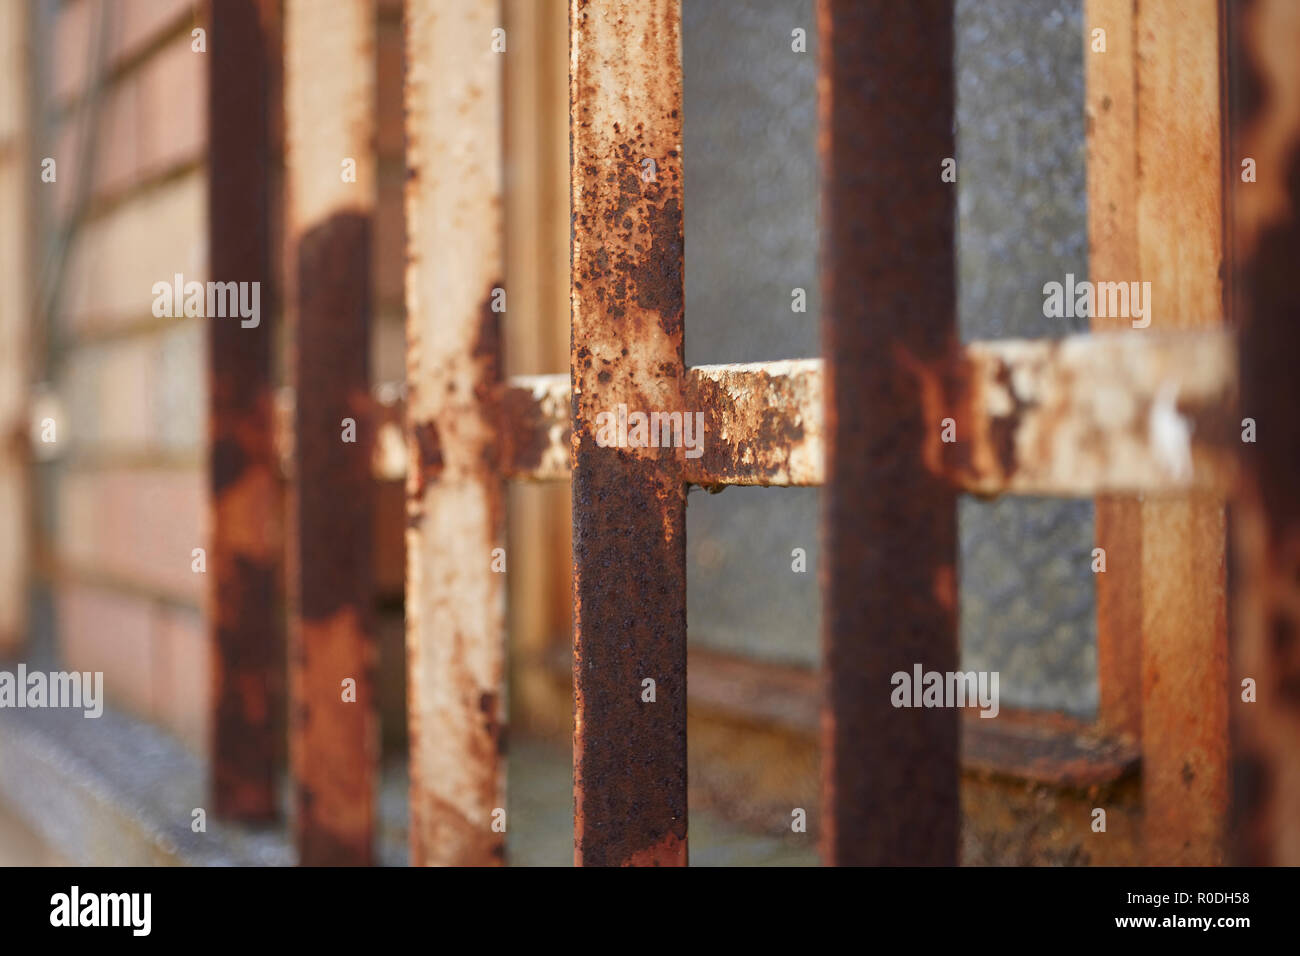 Detail of a rusty and corroded window bar: an example of the corrosion of iron under the effect of bad weather and air. - Stock Image